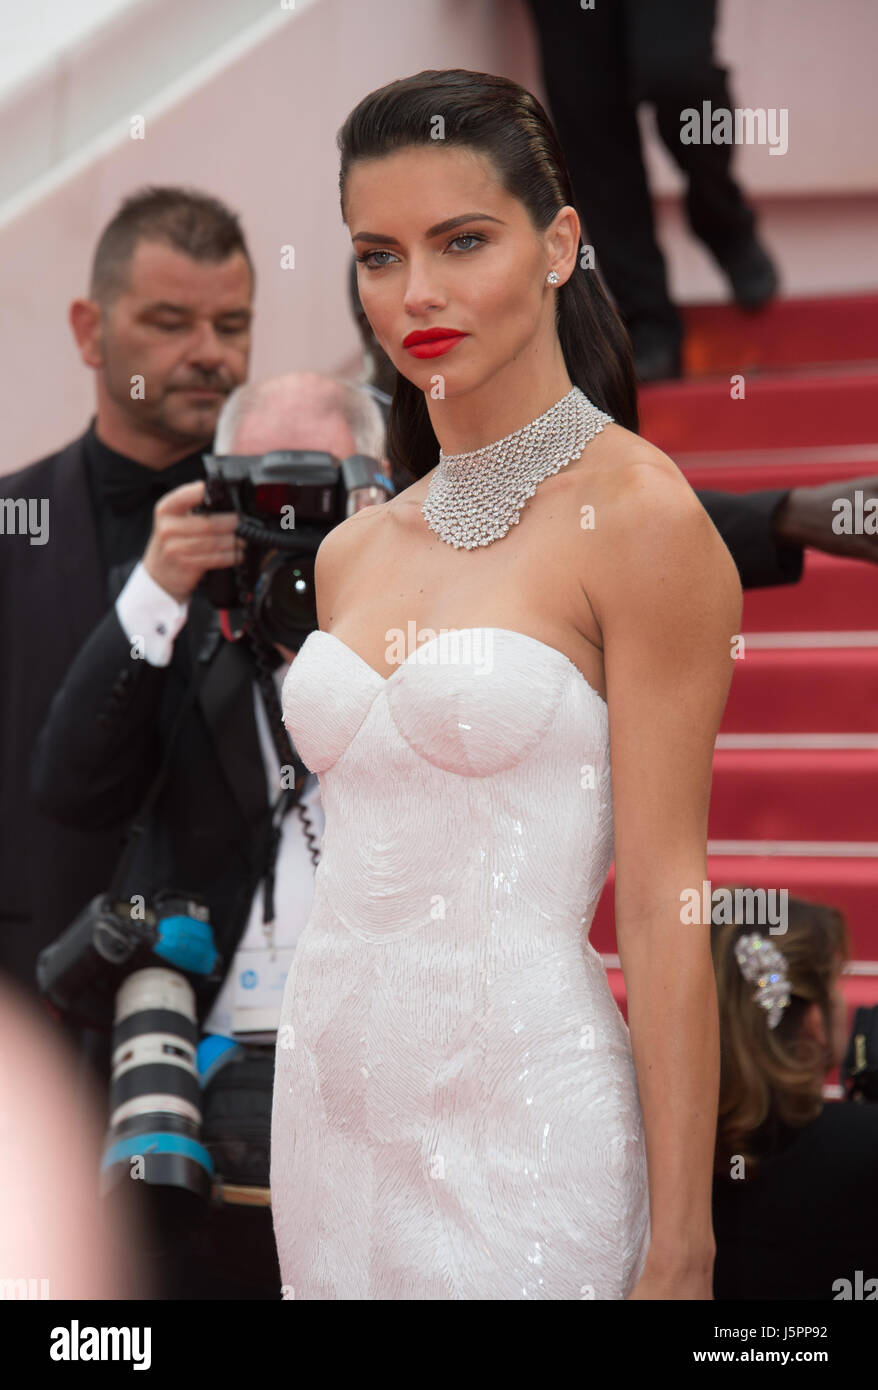 Cannes, France. 18th May, 2017. CANNES, FRANCE. May 18, 2017: Adriana Lima at the premiere for 'Loveless' - Stock Image